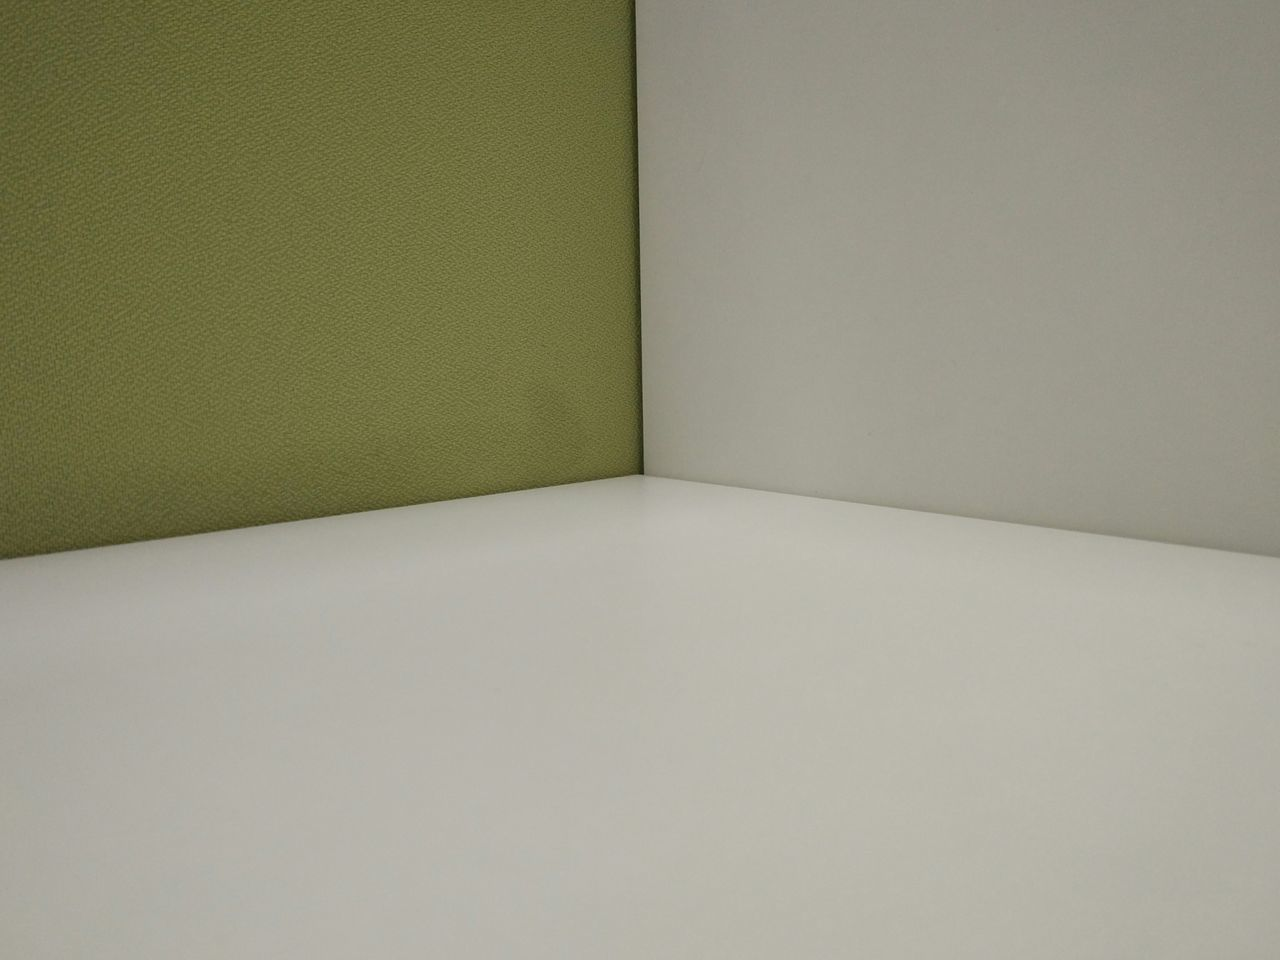 My work place Indoors  Sparse No People Day No Edit/no Filter Interesting Simple Beauty White Color Symmetry MIphotography